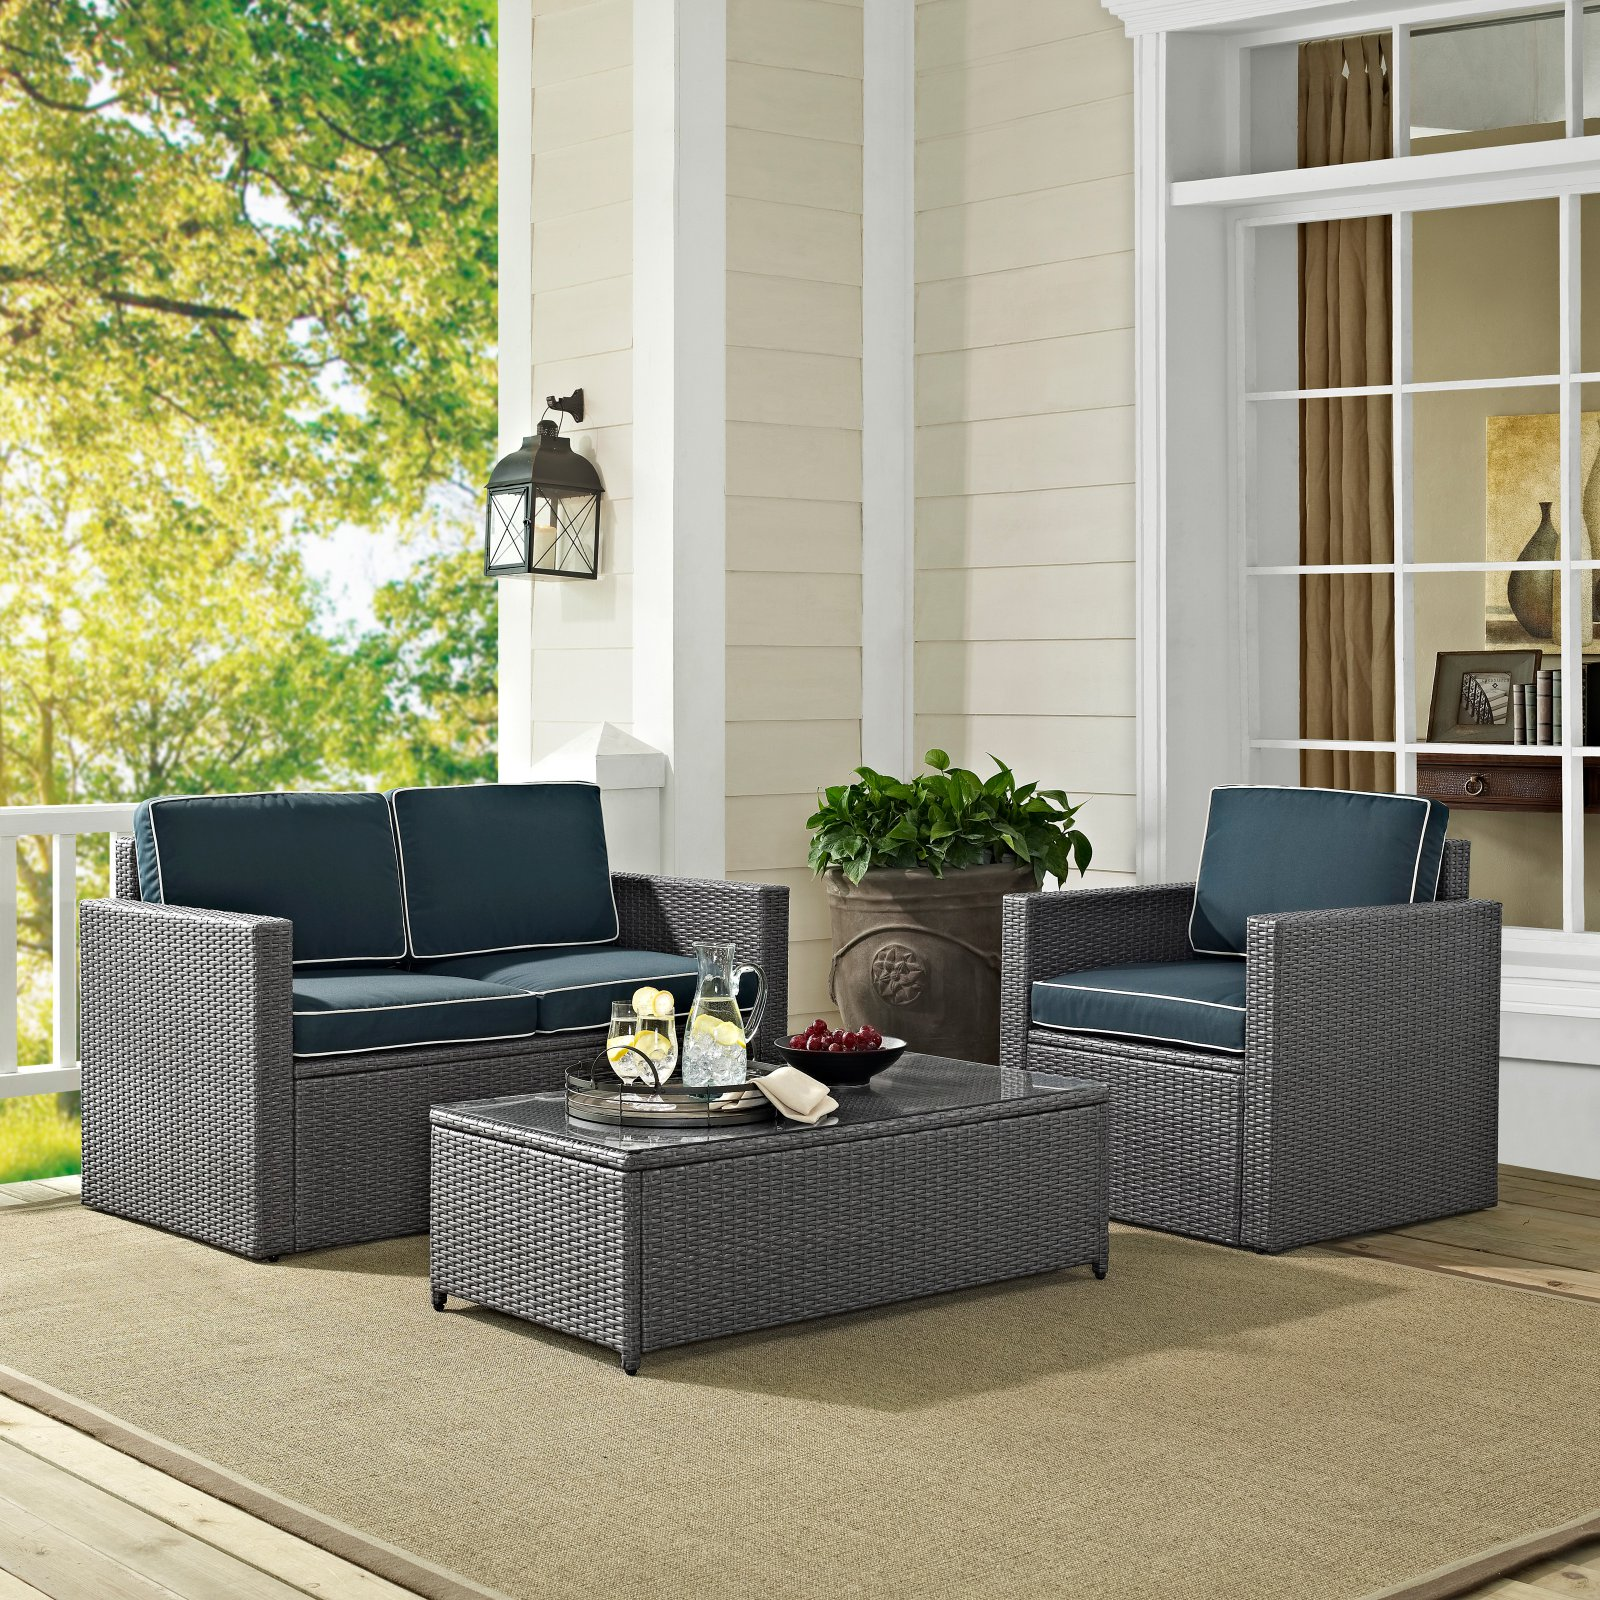 Crosley Palm Harbor Outdoor Wicker Seating Set, Grey Wicker with Navy Cushions, 3-Piece